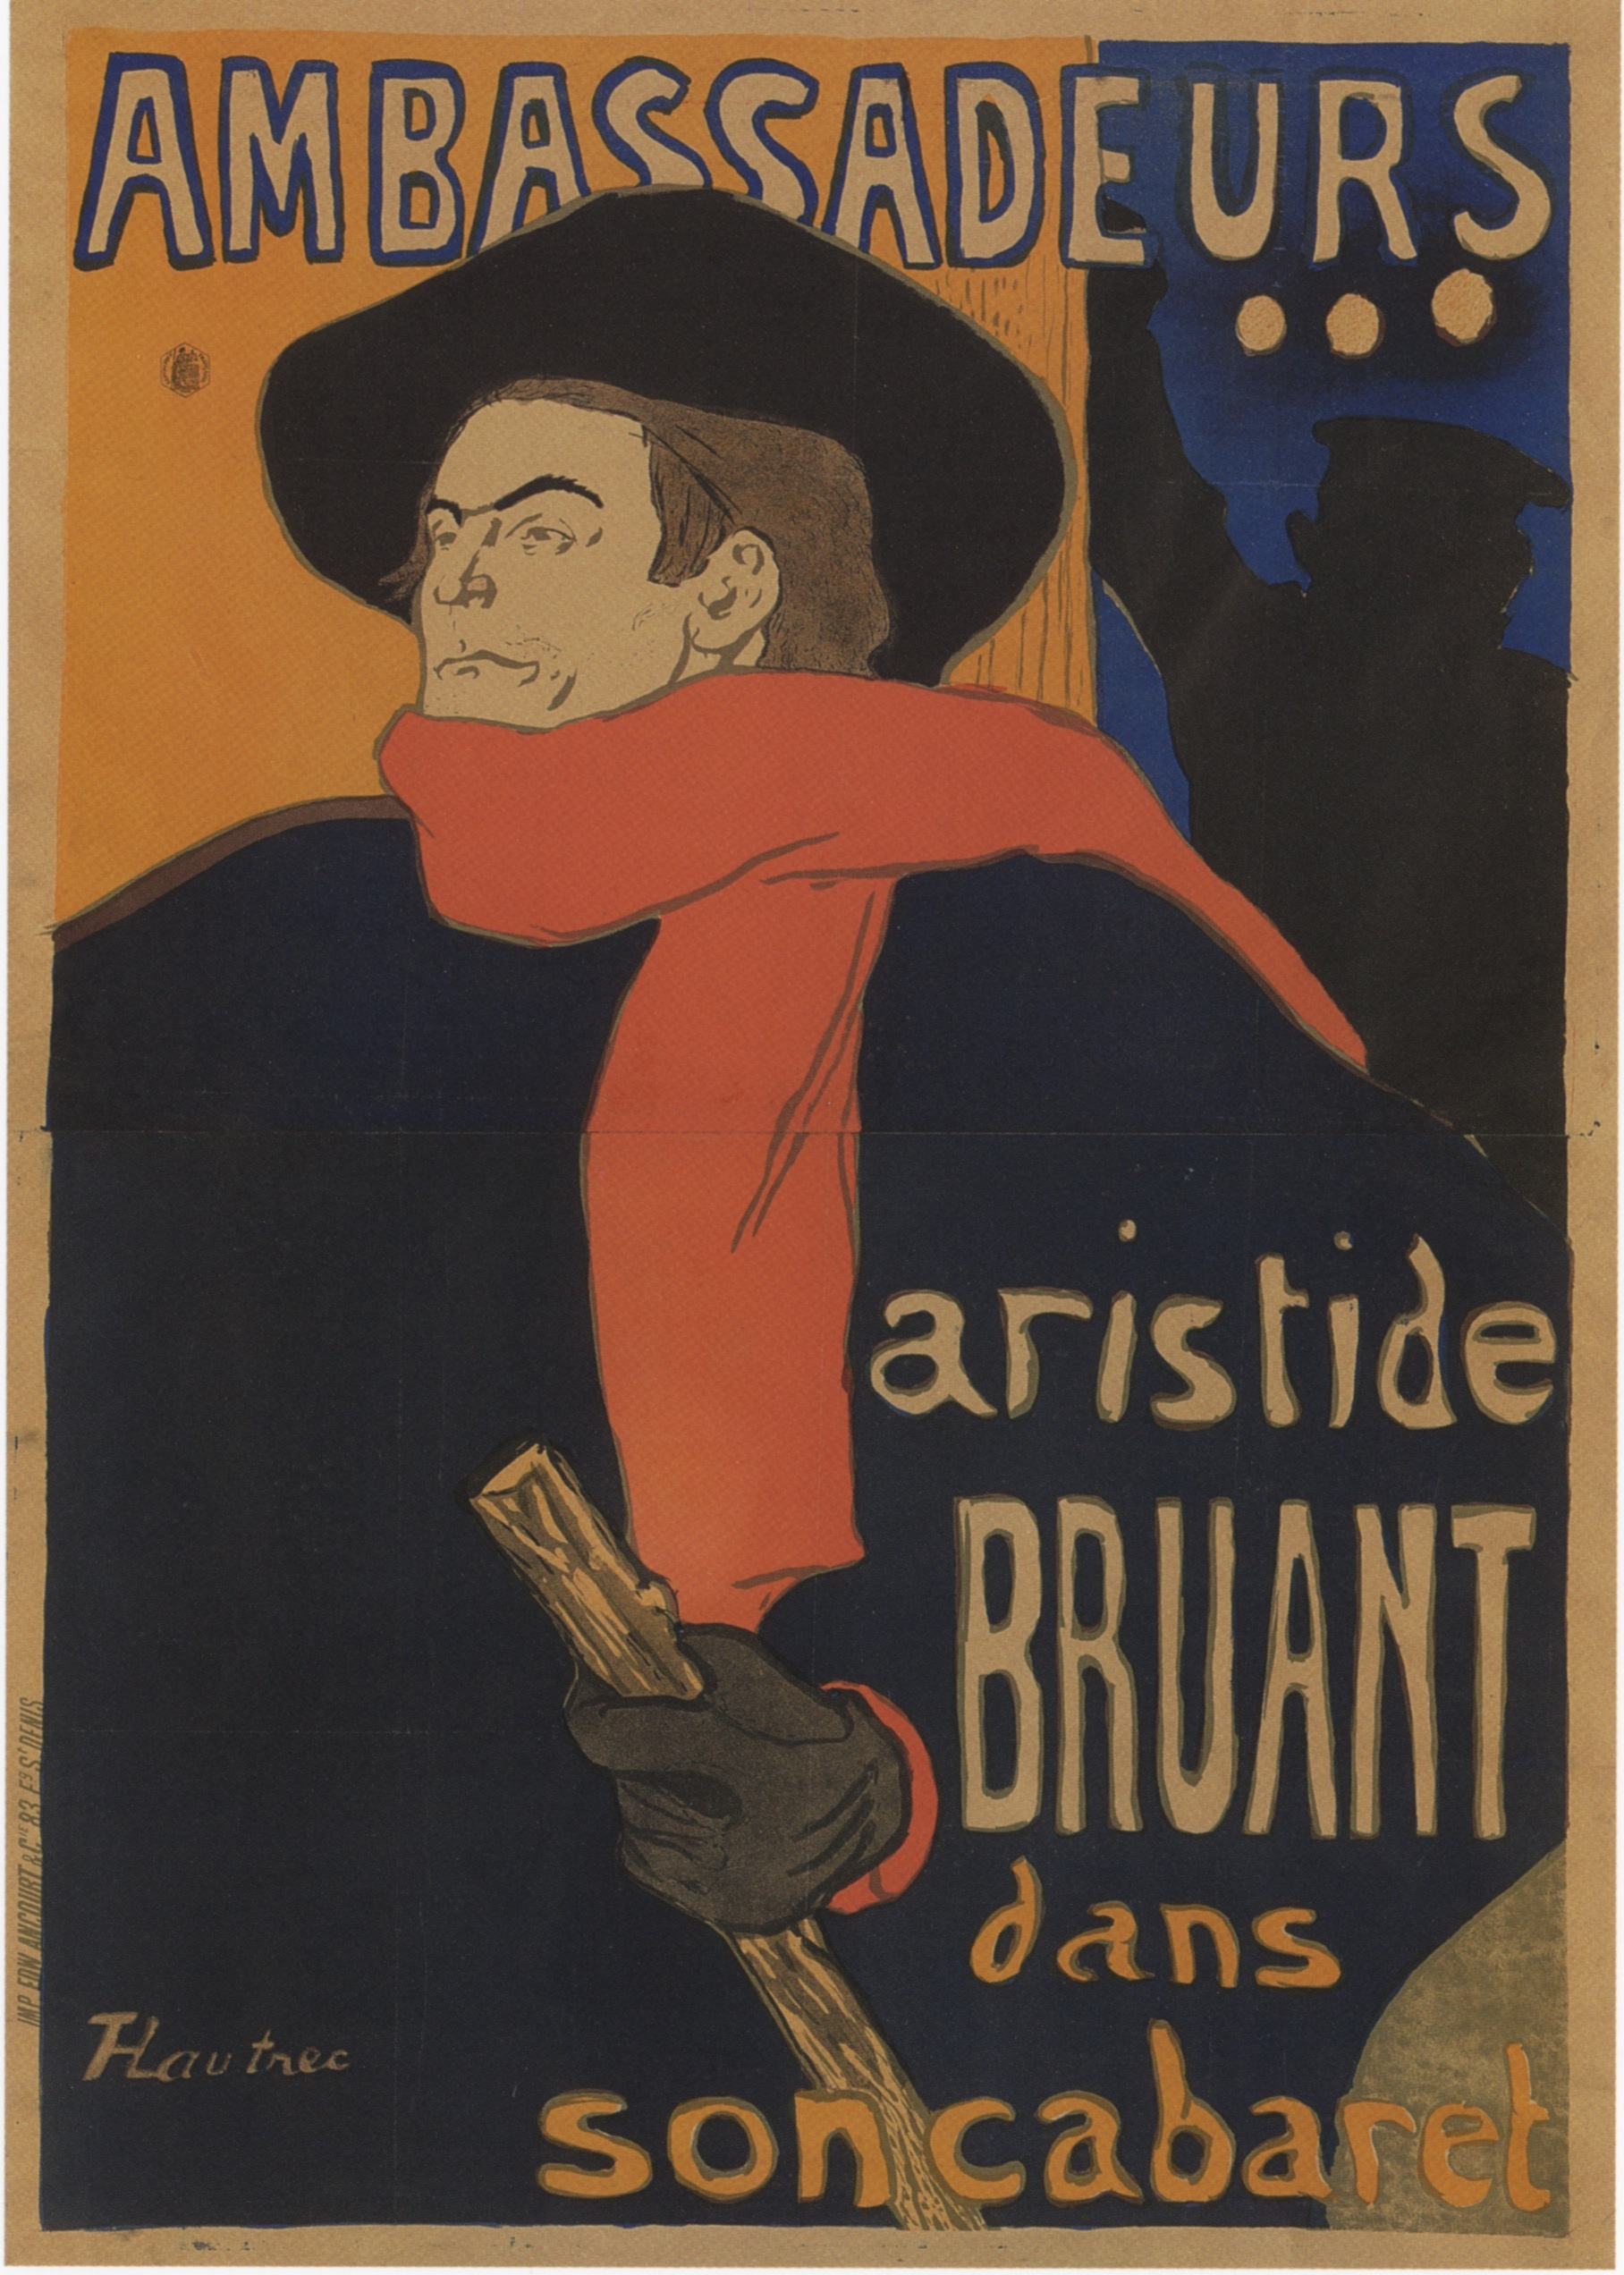 """Henri de Toulouse-Lautrec,  Ambassadeurs: Aristide Bruant dan son cabaret.  Poster advertisement. 1892. LIthograph.  The Victoria and Albert (London) entry for  Ambassadeurs  reads as following:  """"This poster advertises an event with the singer Aristide Bruant at the Ambassadeurs nightclub in Paris, 1892. Bruant, a satirical singer and a friend of the French artist Henri de Toulouse-Lautrec (1864-1901), insisted that Lautrec design this poster. The director of the Ambassadeurs disliked its dramatic and uncompromising style, but since Bruant said he would not perform unless the poster remained, it was used both outside the theatre and inside to decorate the proscenium arch.""""   Link here ."""